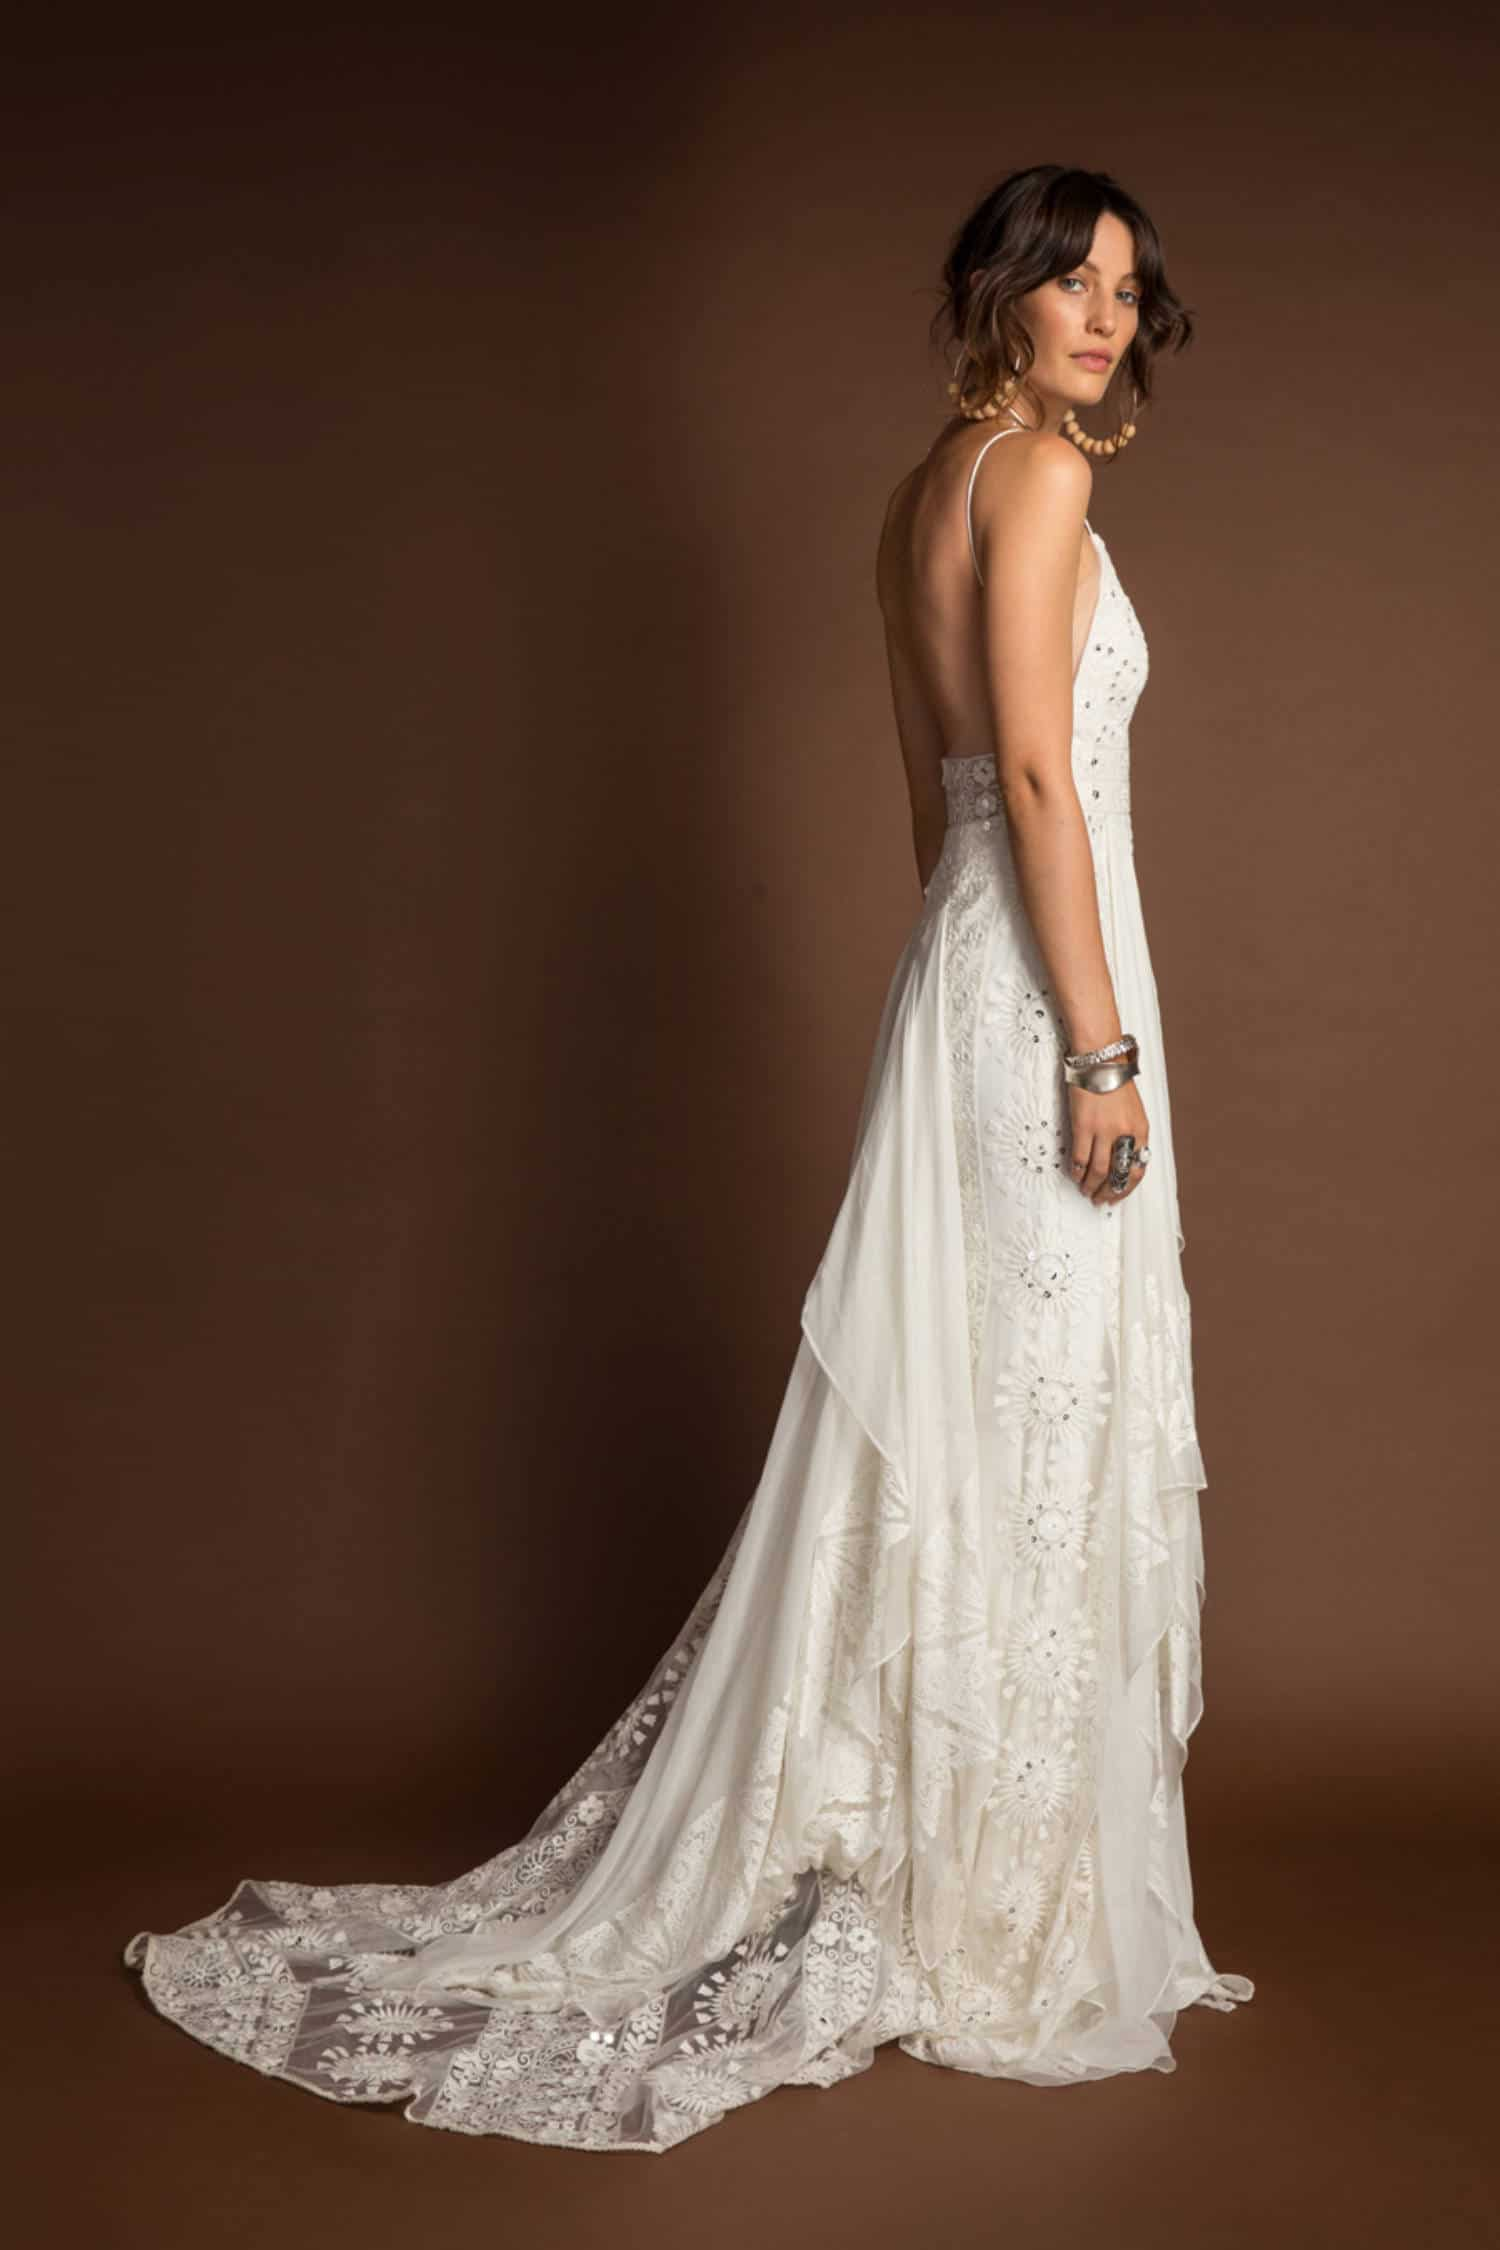 rue de sien best elopement wedding dresses boho